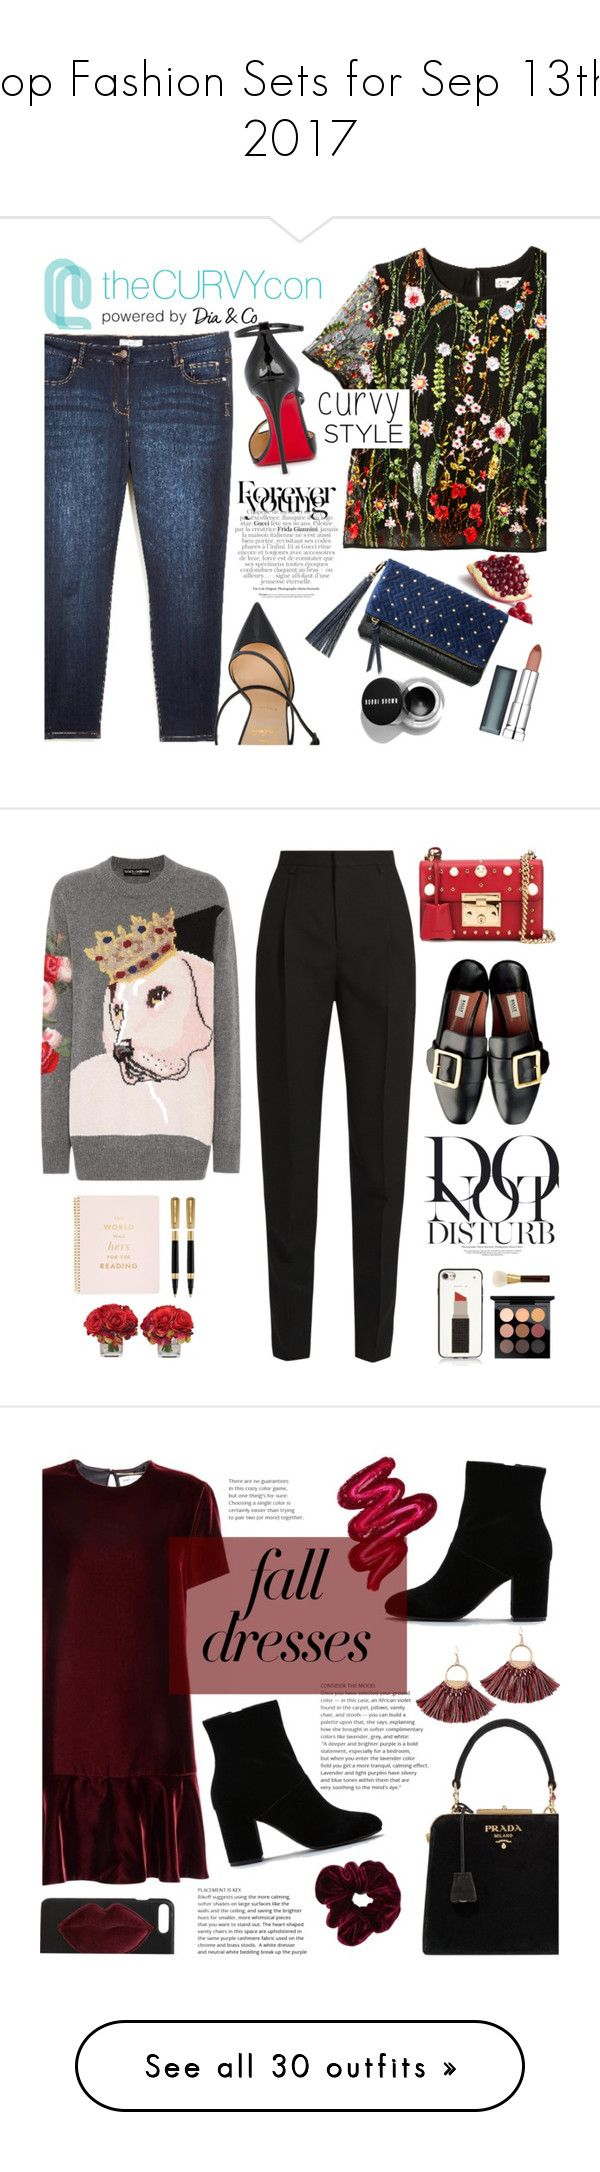 """""""Top Fashion Sets for Sep 13th, 2017"""" by polyvore ❤ liked on Polyvore featuring Christian Louboutin, Maybelline, Gucci, contestentry, TheCurvyCon, MyDiaStyle, Dolce&Gabbana, Yves Saint Laurent, Anja and The French Bee"""